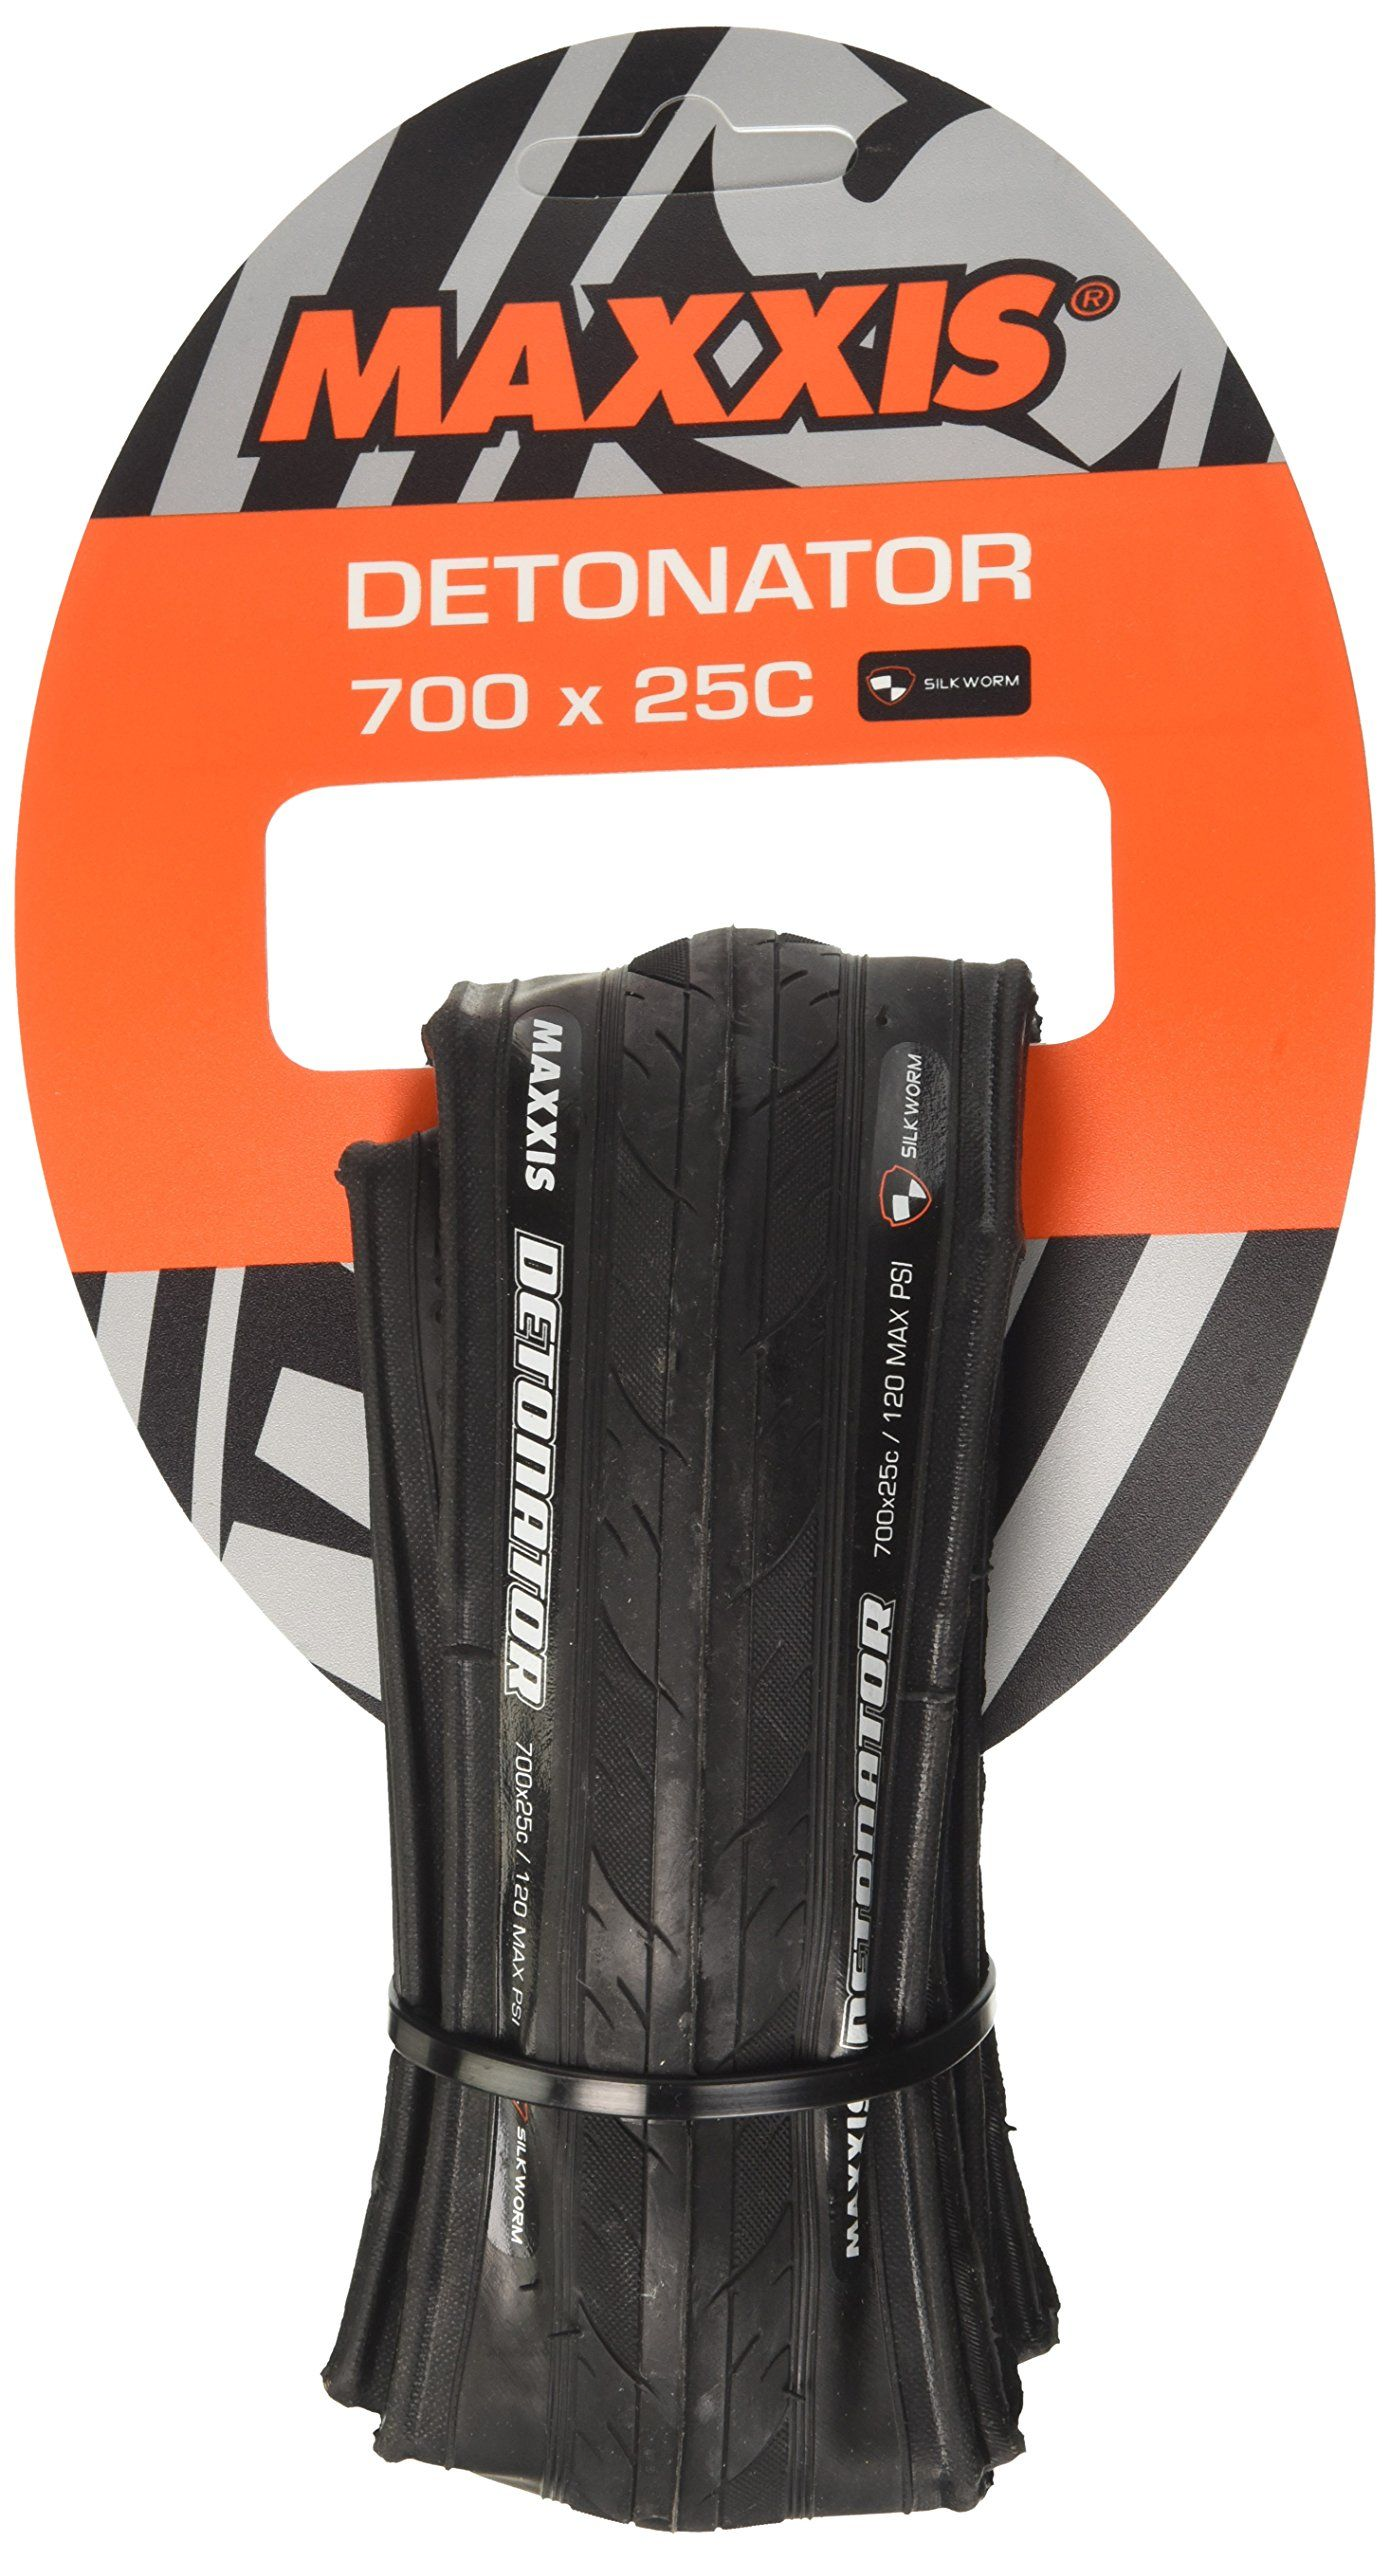 Maxxis Detonator M203 Road Bike Training Tire 700x25c Black 28